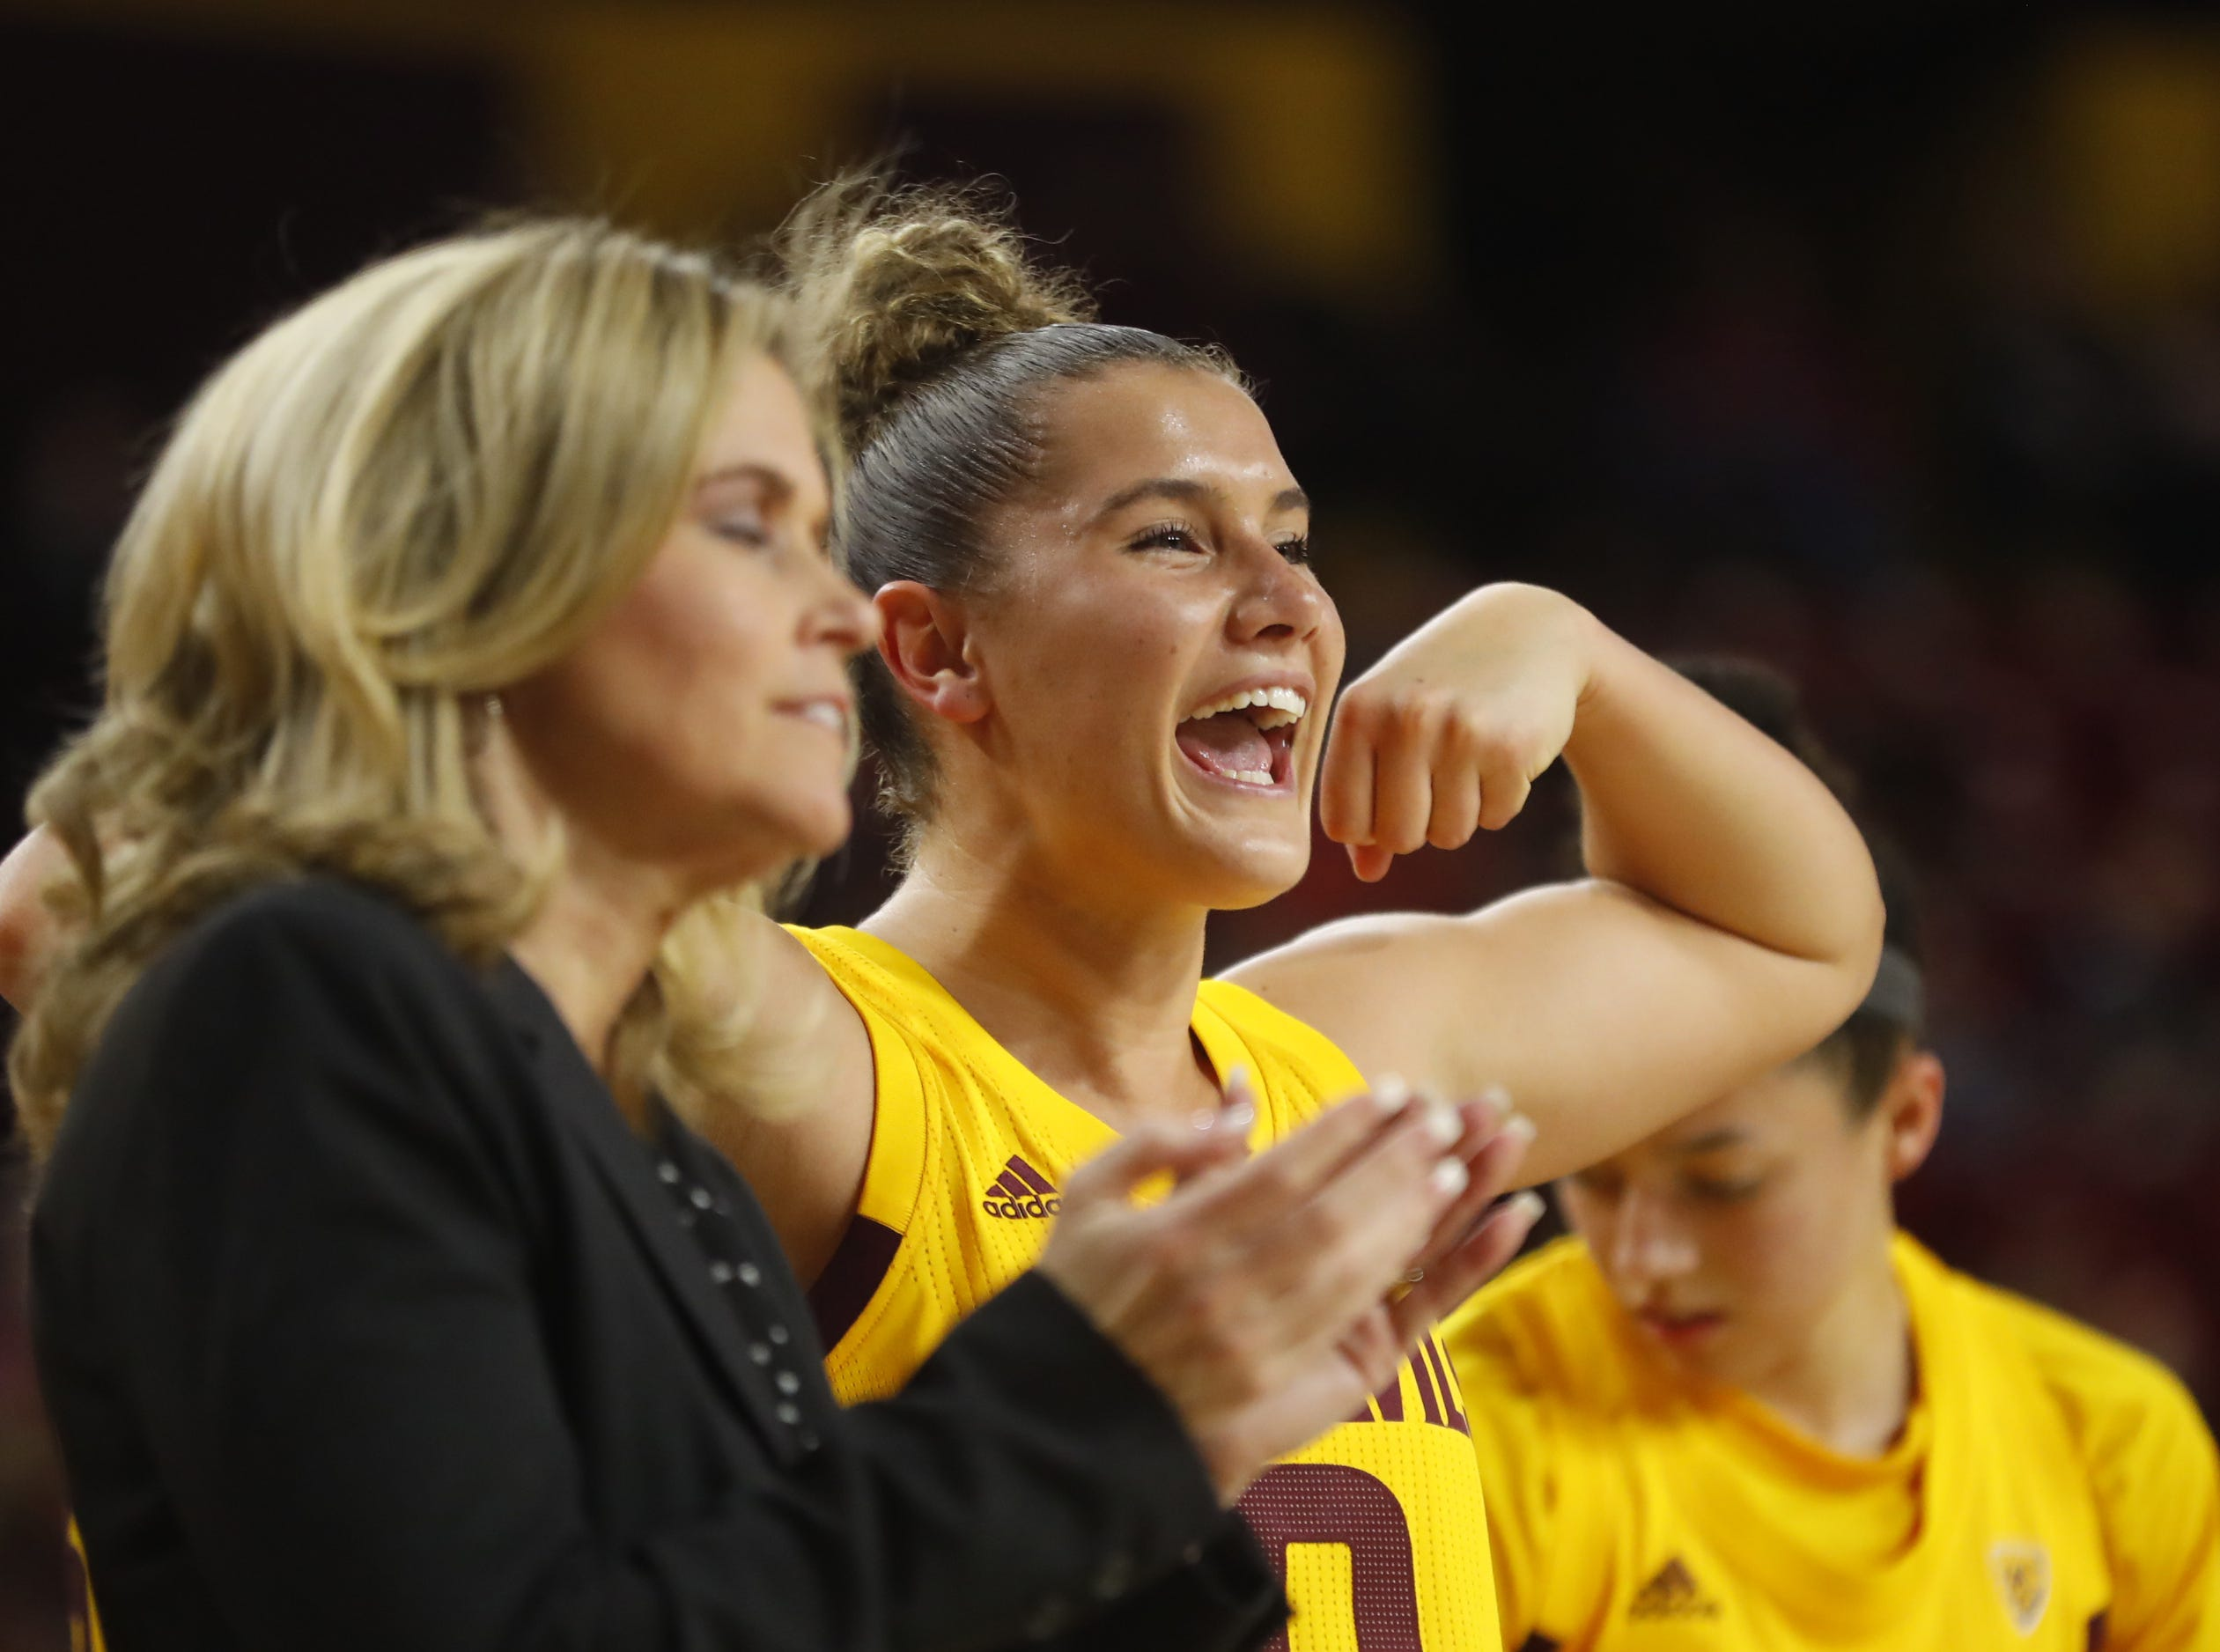 ASU's Taya Hanson (0) celebrates after a basket during the second half against Arizona at Wells Fargo Arena in Tempe, Ariz. on February 1, 2019.